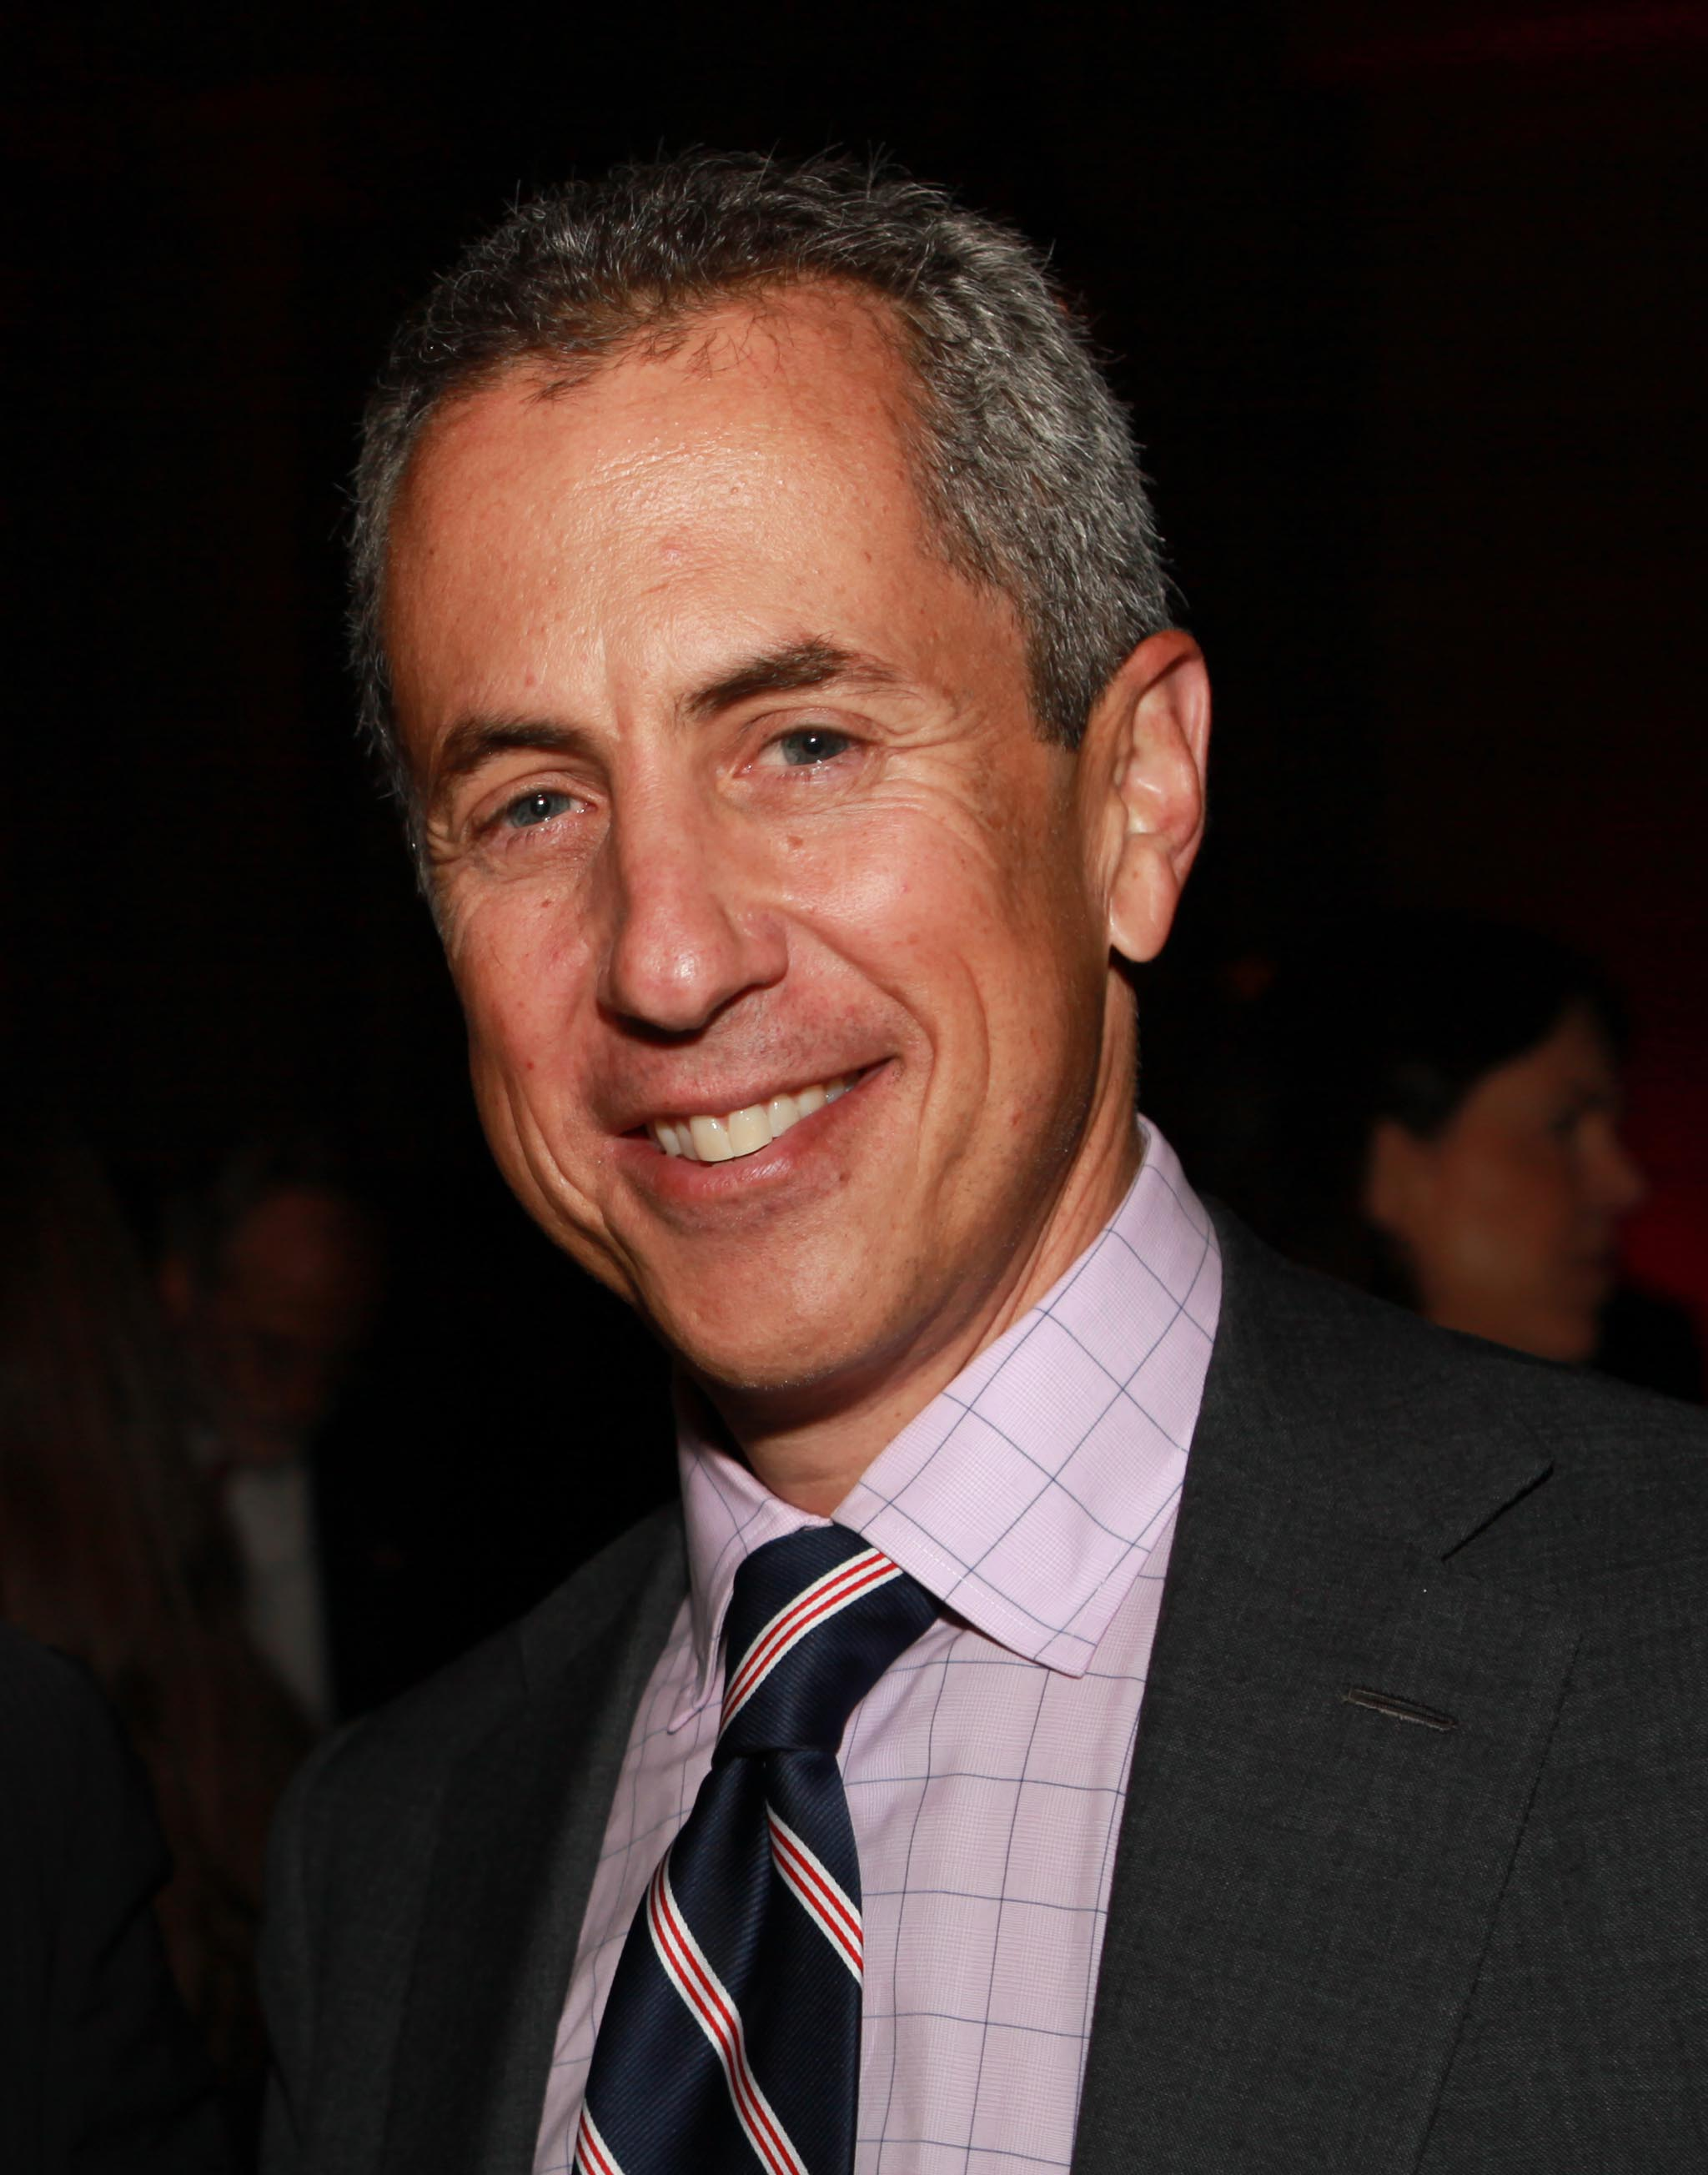 File:Danny Meyer FT Charity Wine Dinner 2010.jpg - Wikimedia Commons